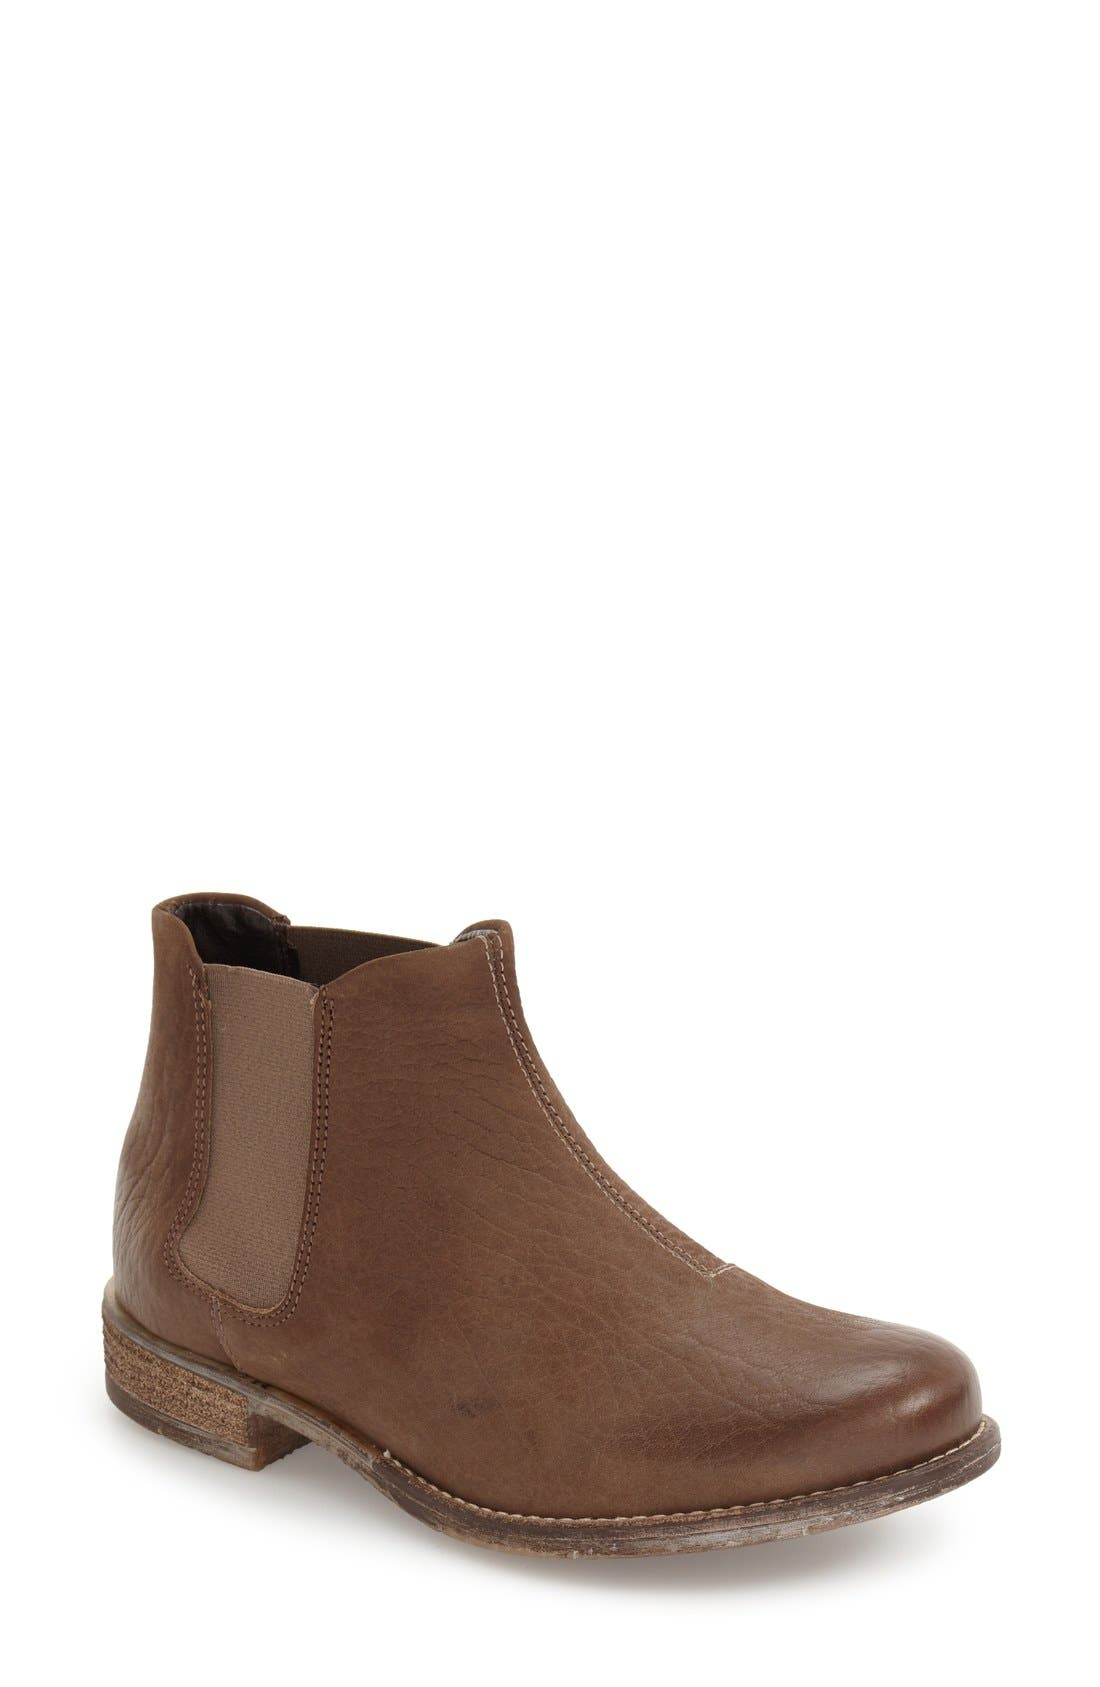 Alternate Image 1 Selected - Josef Seibel 'Sienna 05' Chelsea Boot (Women)